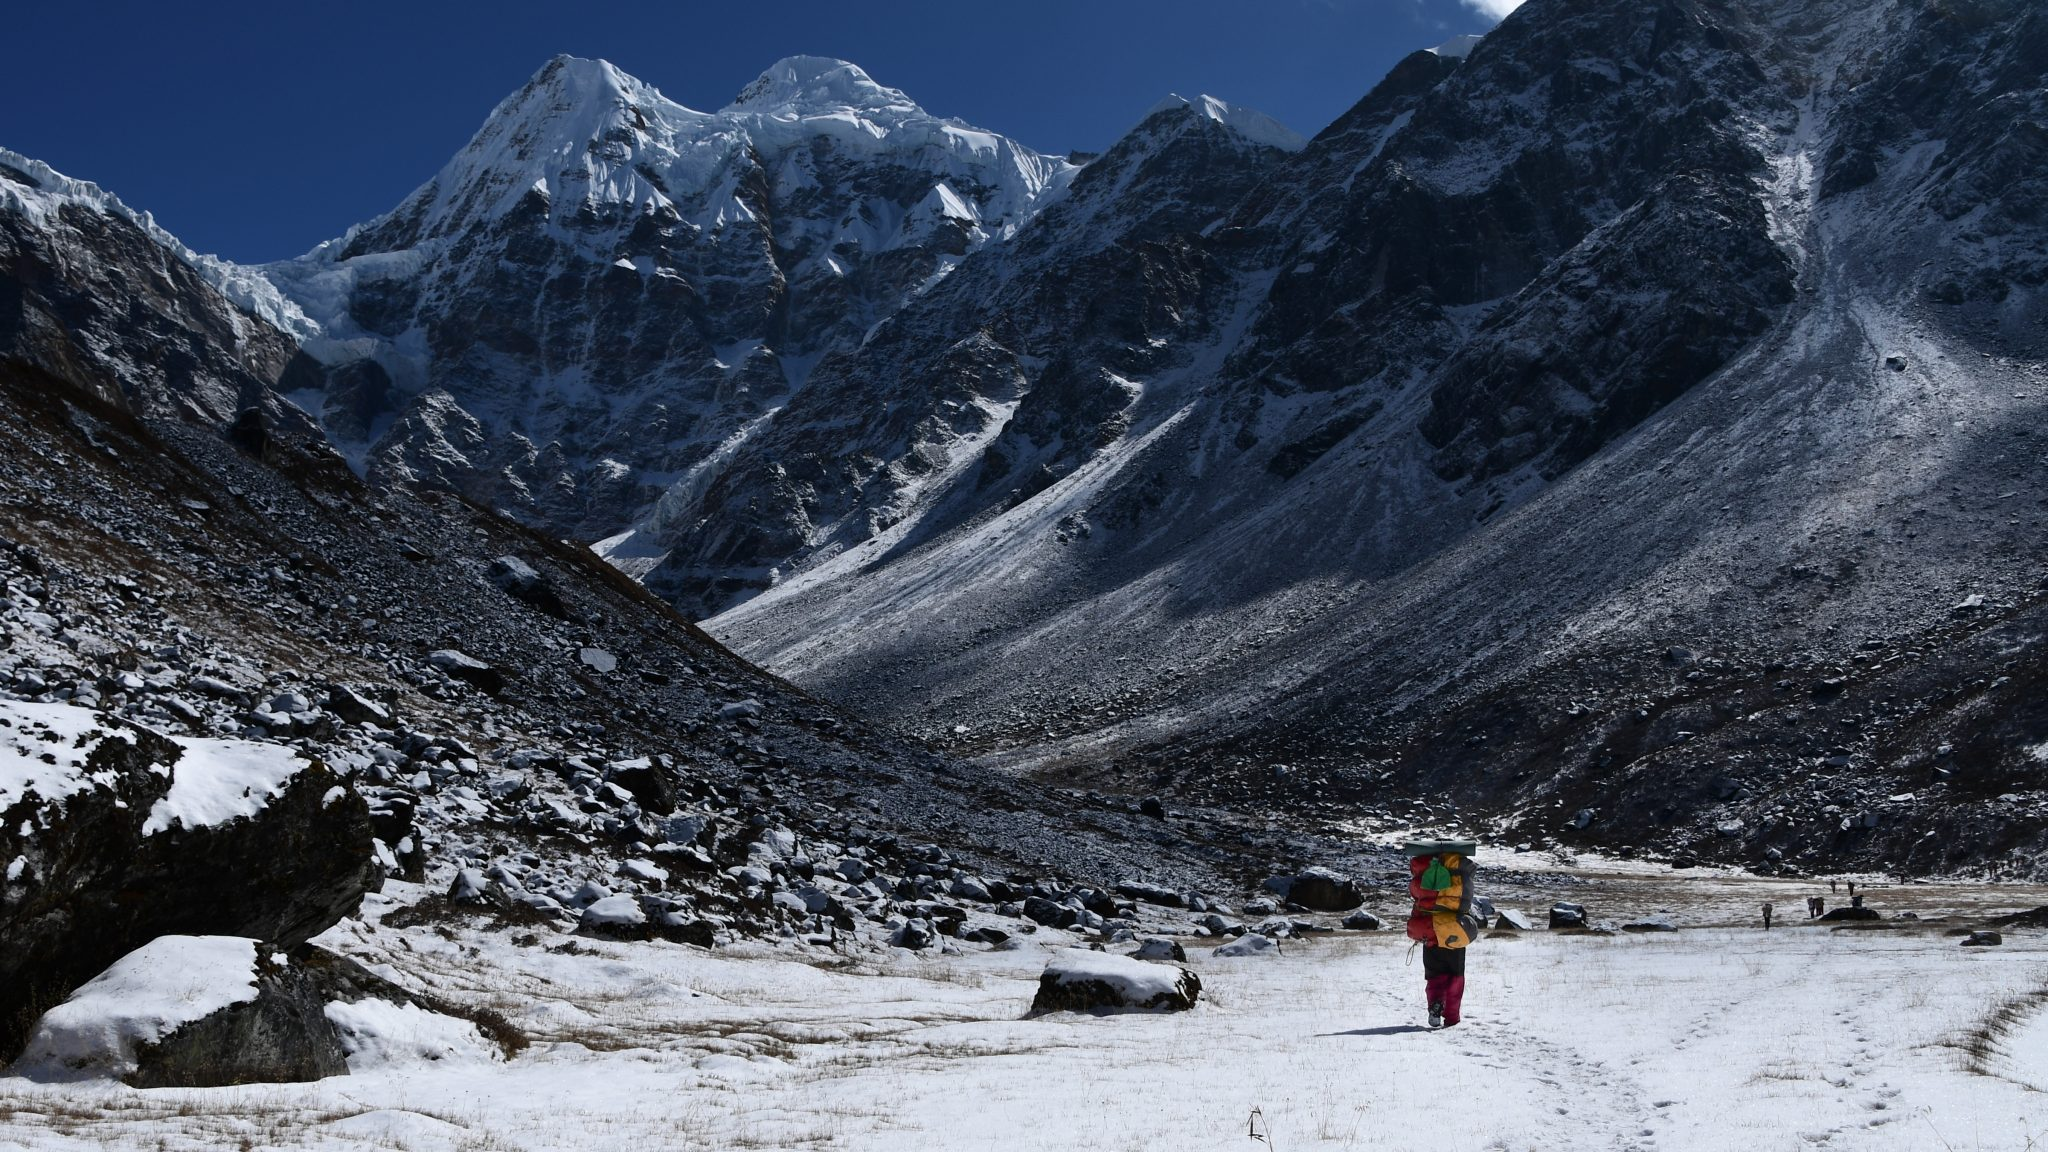 Guided expedition to unclimbed peaks